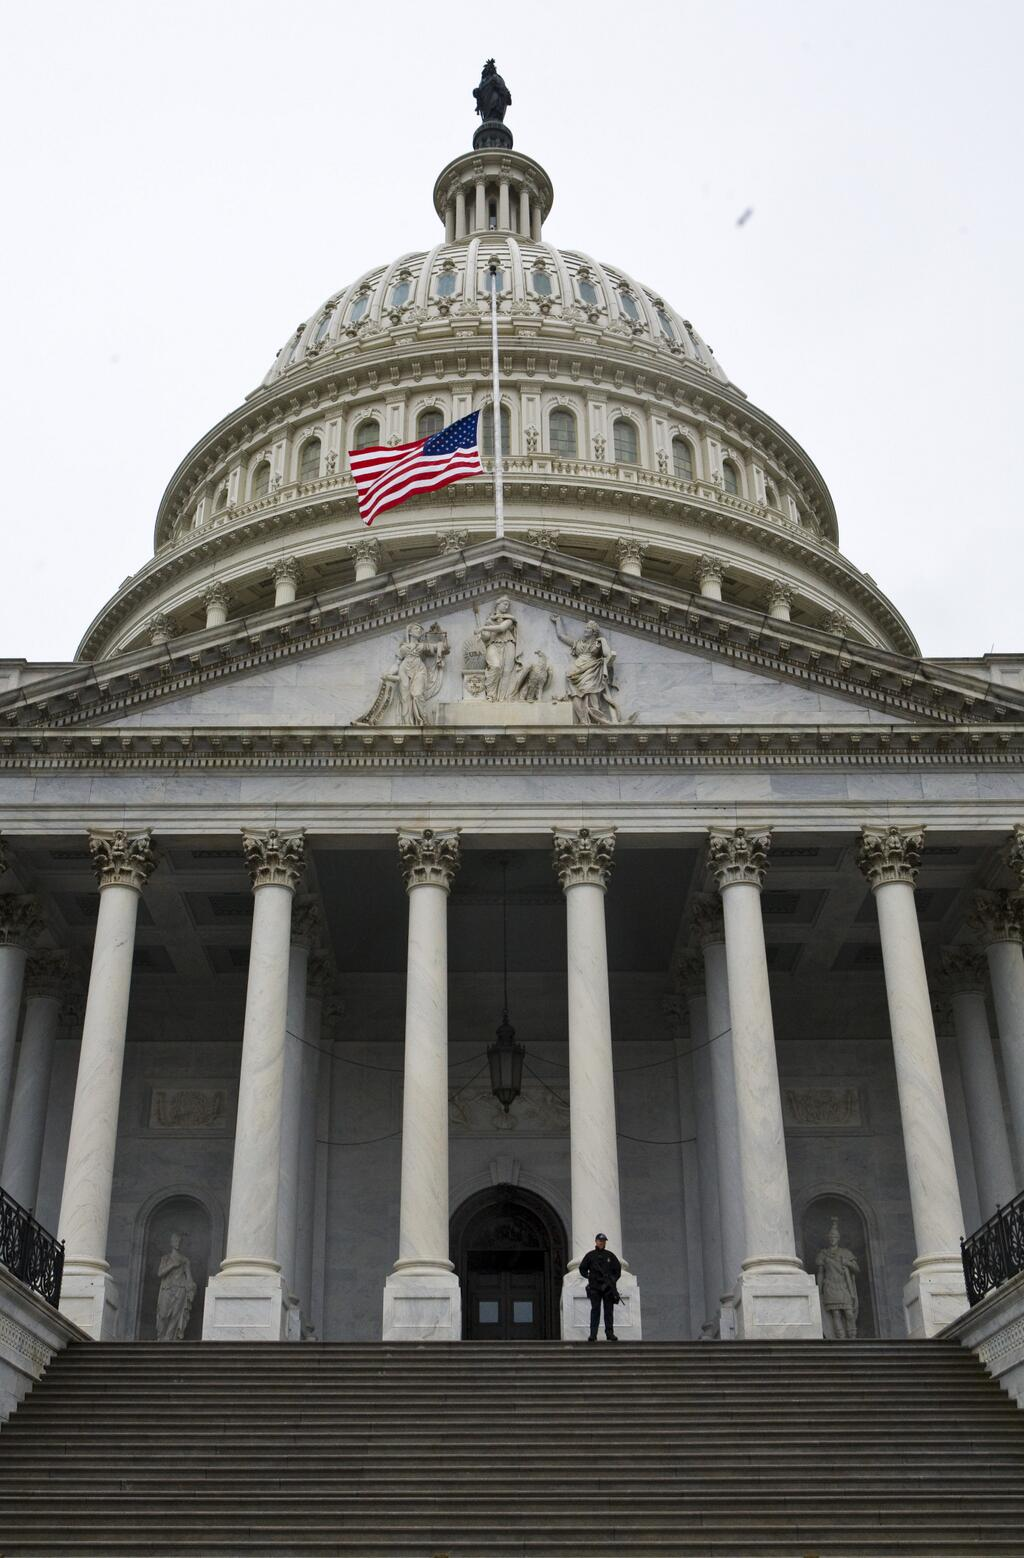 The flags on Capitol Hill fly at half staff in memory of Nelson Mandela #RememberingMandela http://t.co/tyL9O162Zz